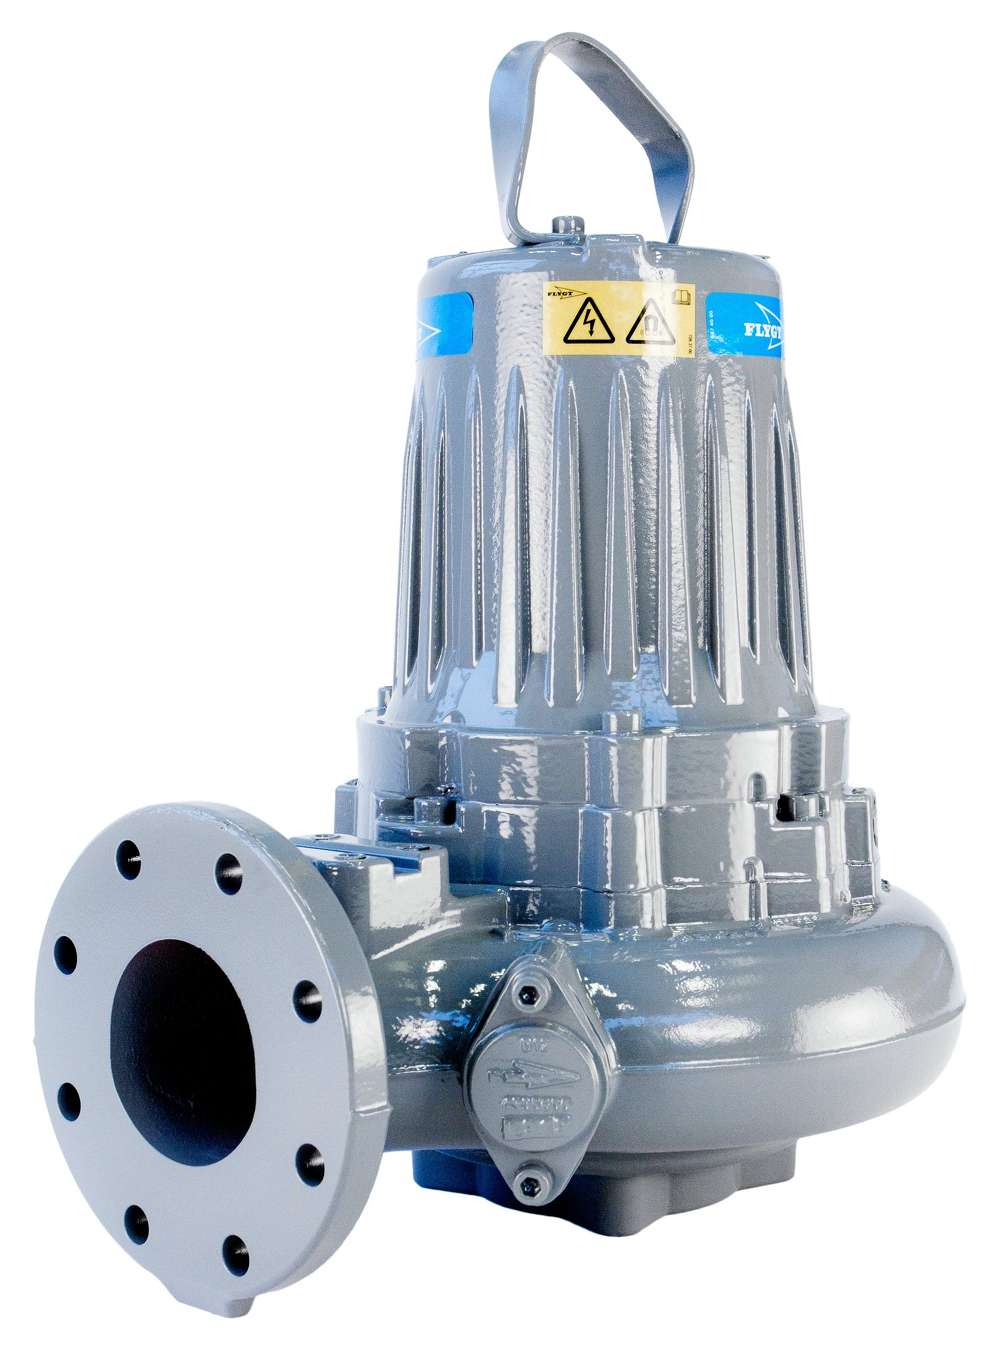 The Flygt 3000 Series of small and mid-sized pumps covers an extensive performance range and are classified as low, medium, or high-head pumps.